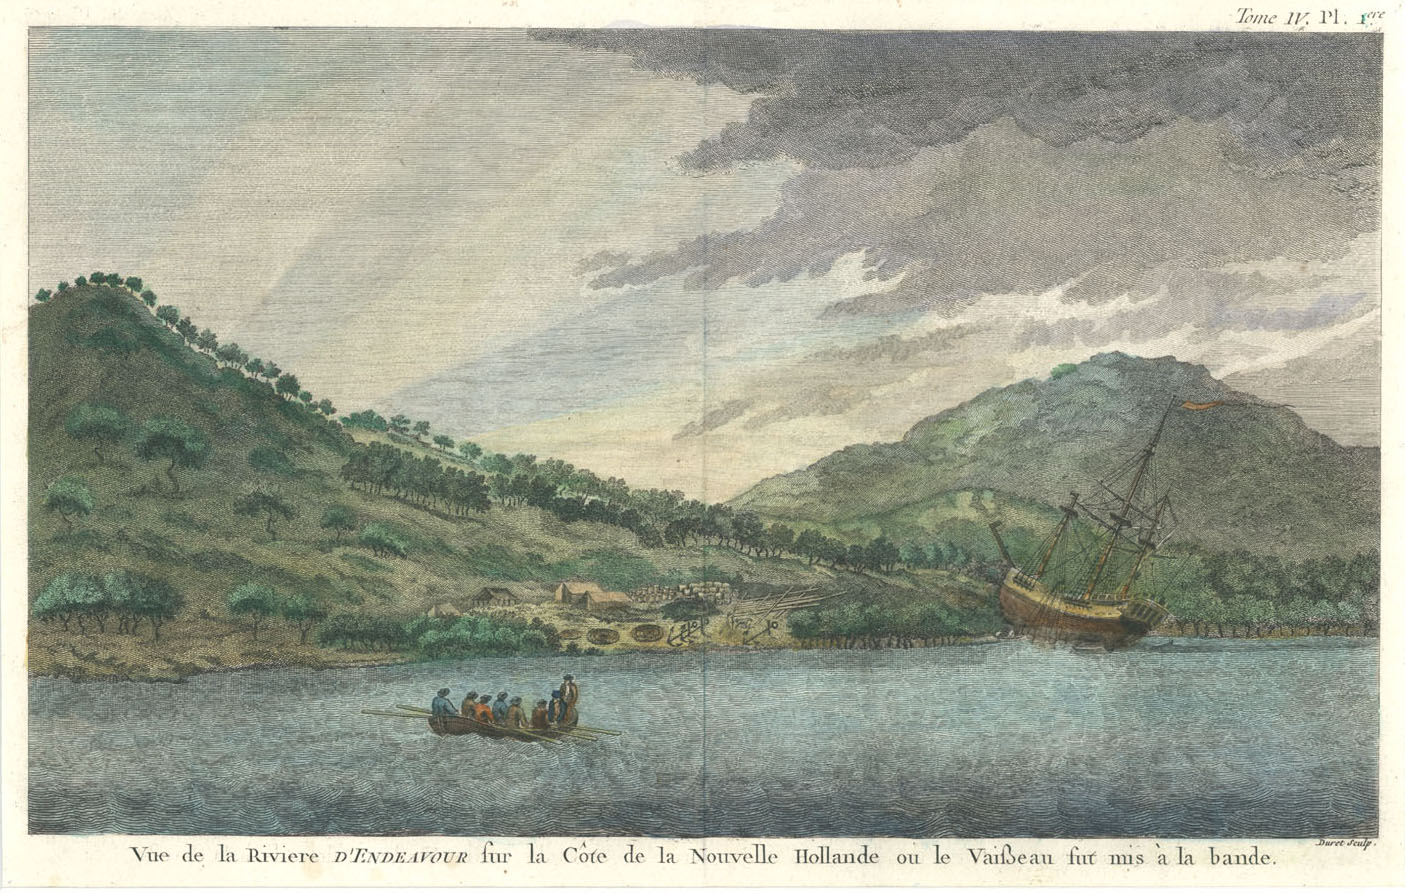 Cook's 'Endeavour' aground for repairs (near Cooktown). c1774